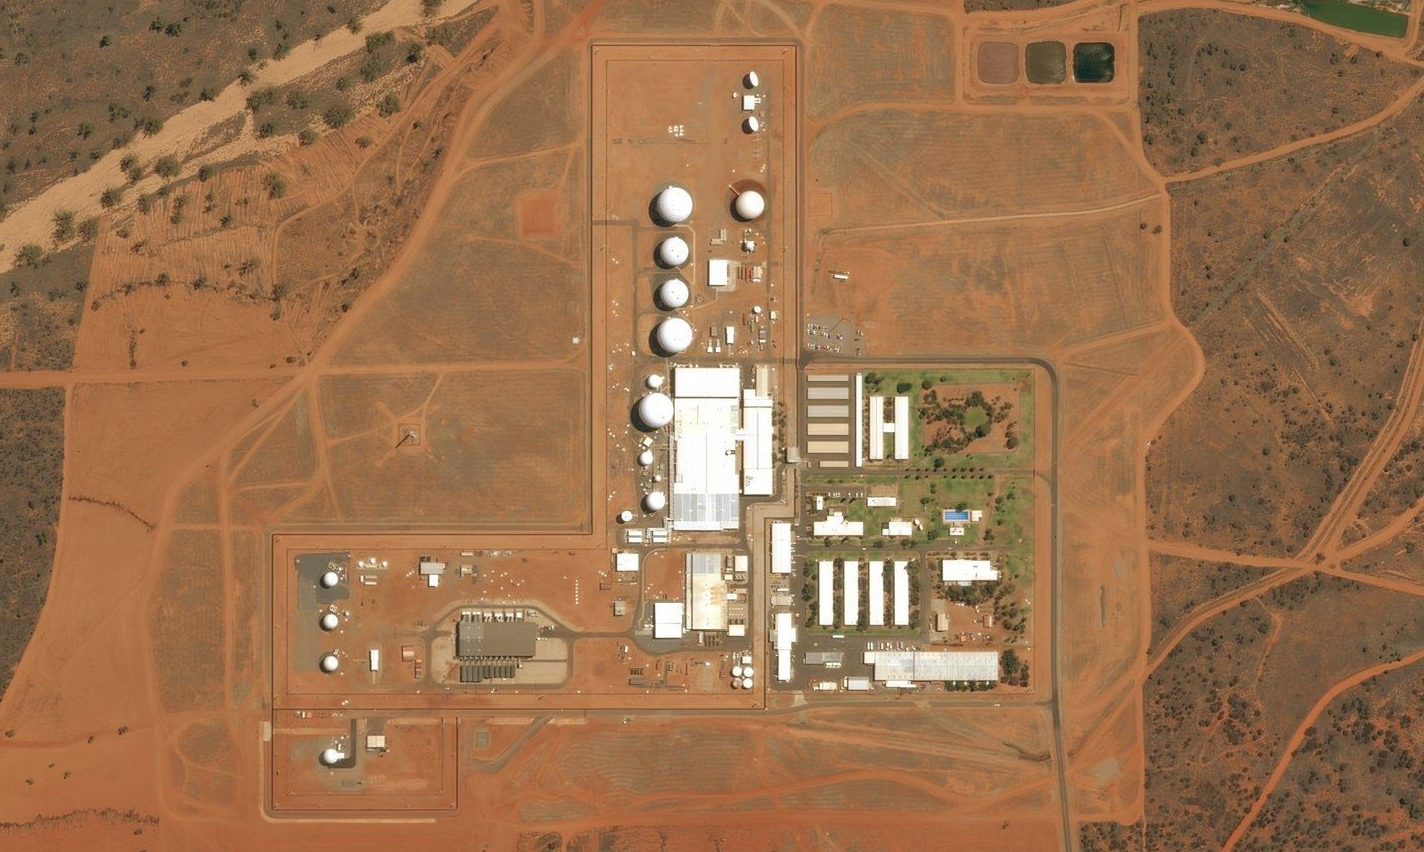 The NSA Spy Hub in the Heart of Australia